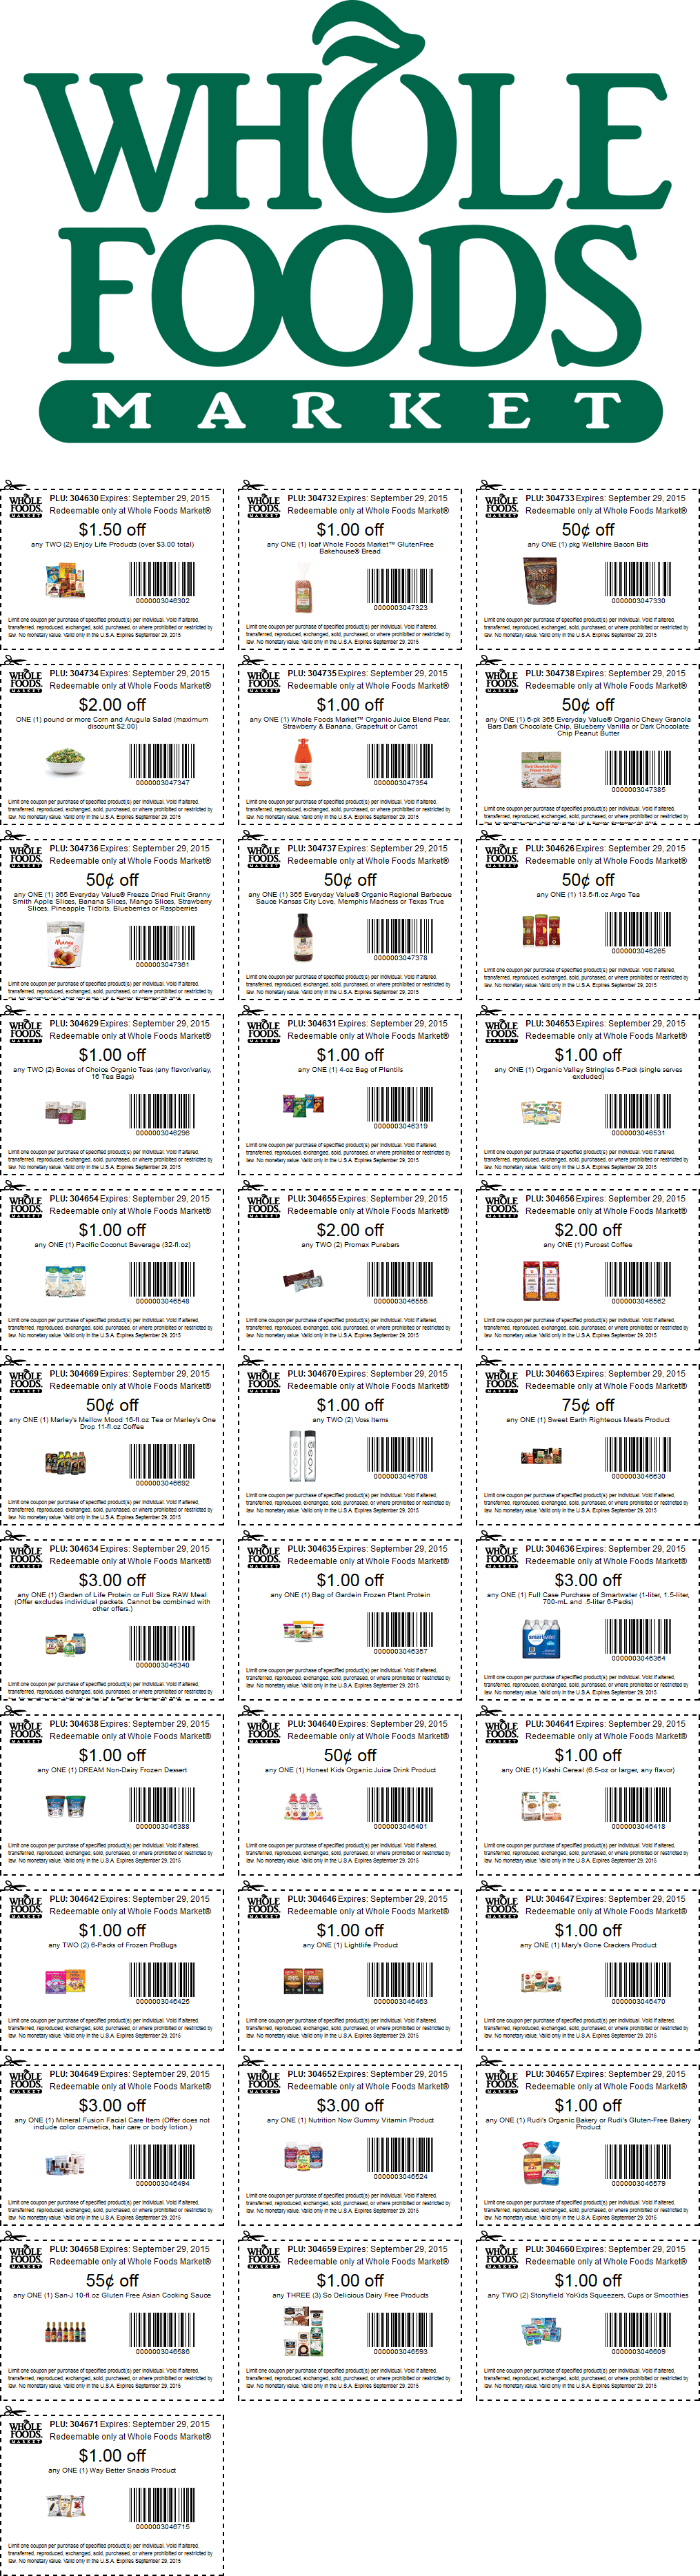 Whole Foods Coupon June 2017 Various grocery coupons for Whole Foods market